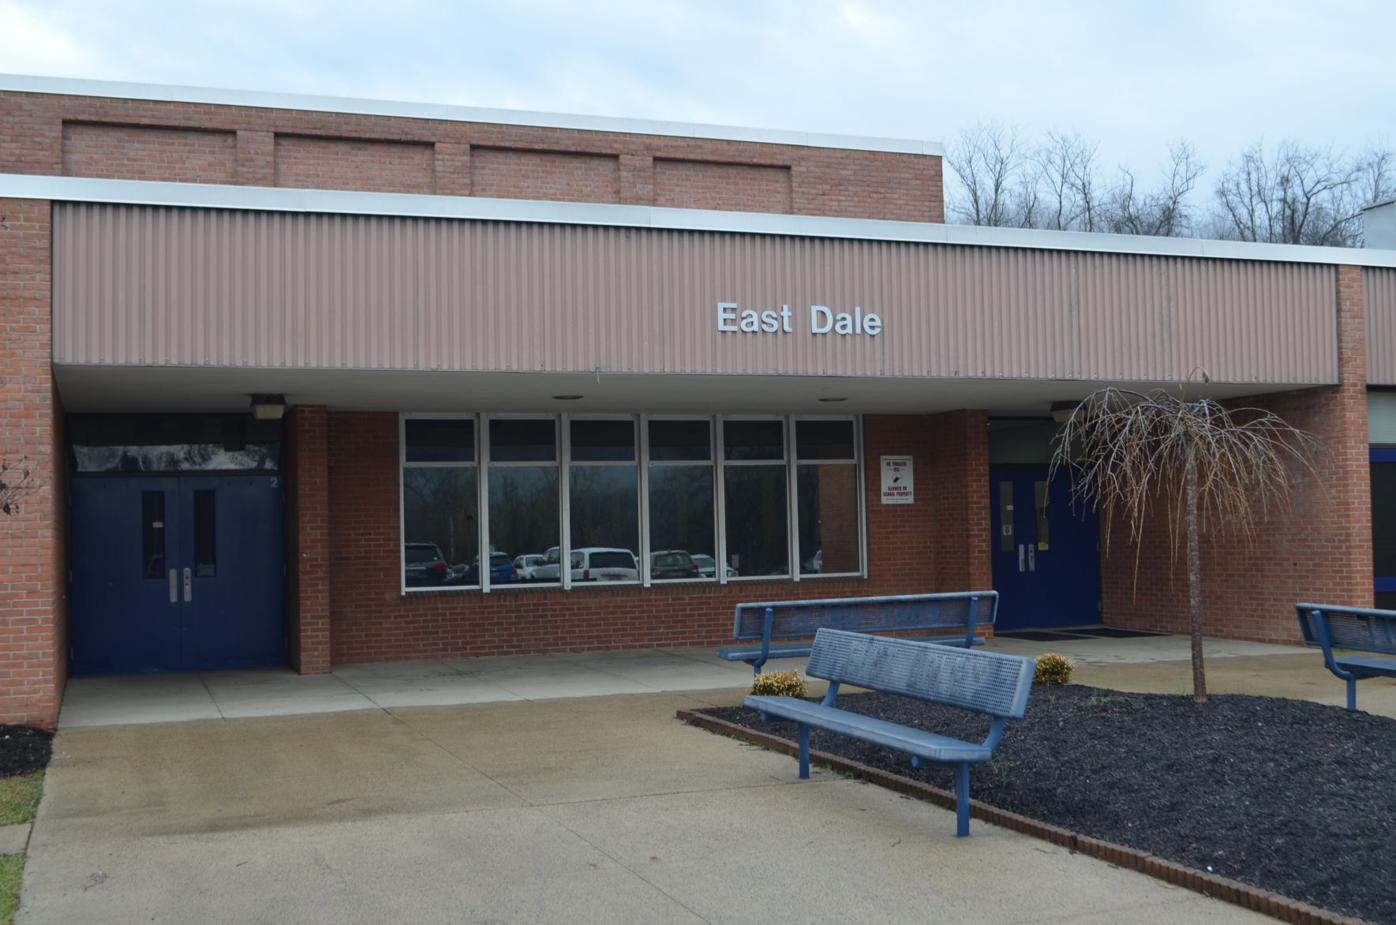 East Dale Elementary